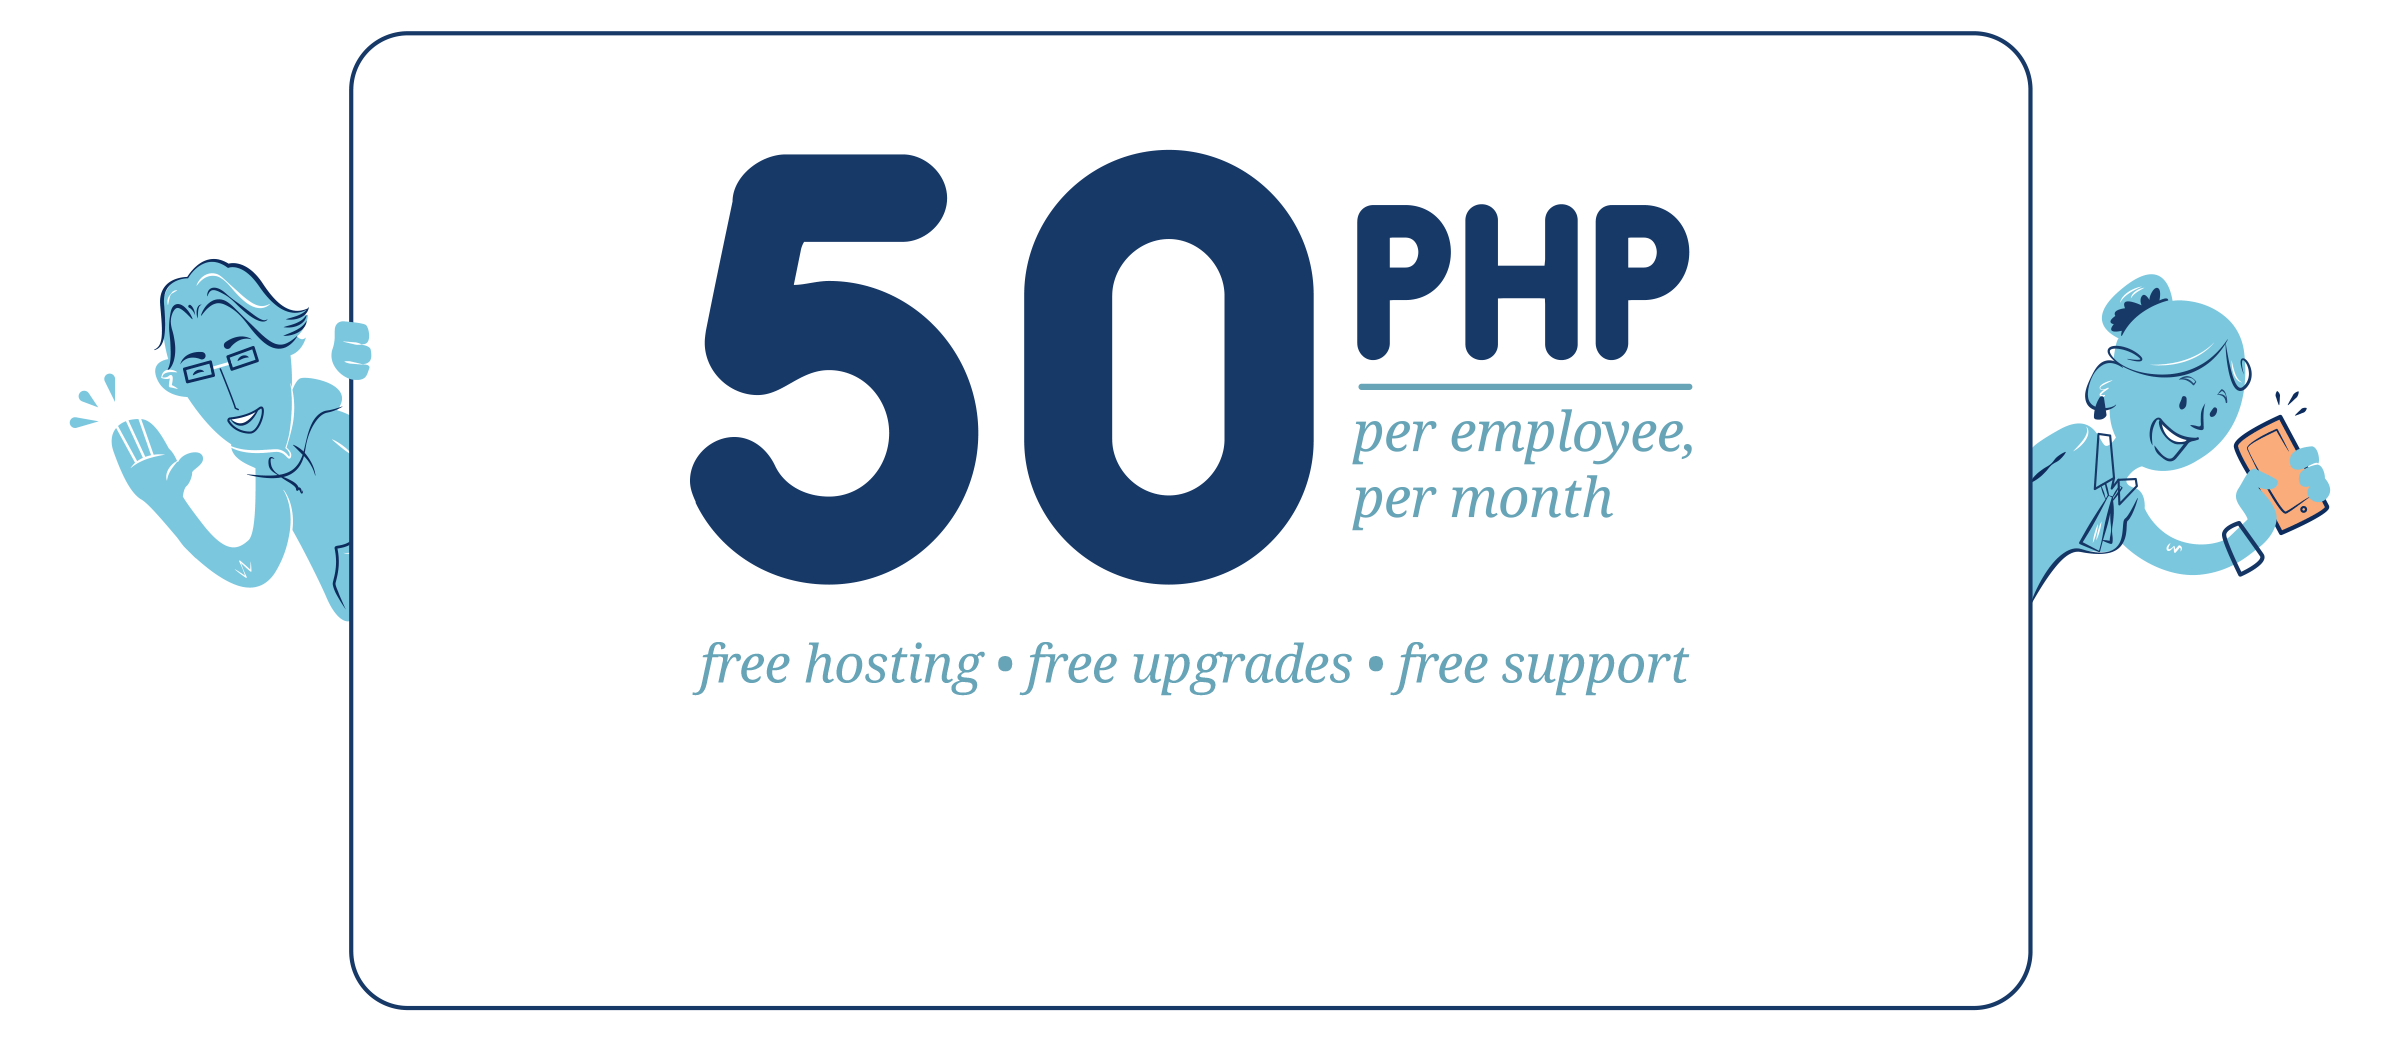 Affordable Payroll software in the Philippines with free support, maintenance and upgrades